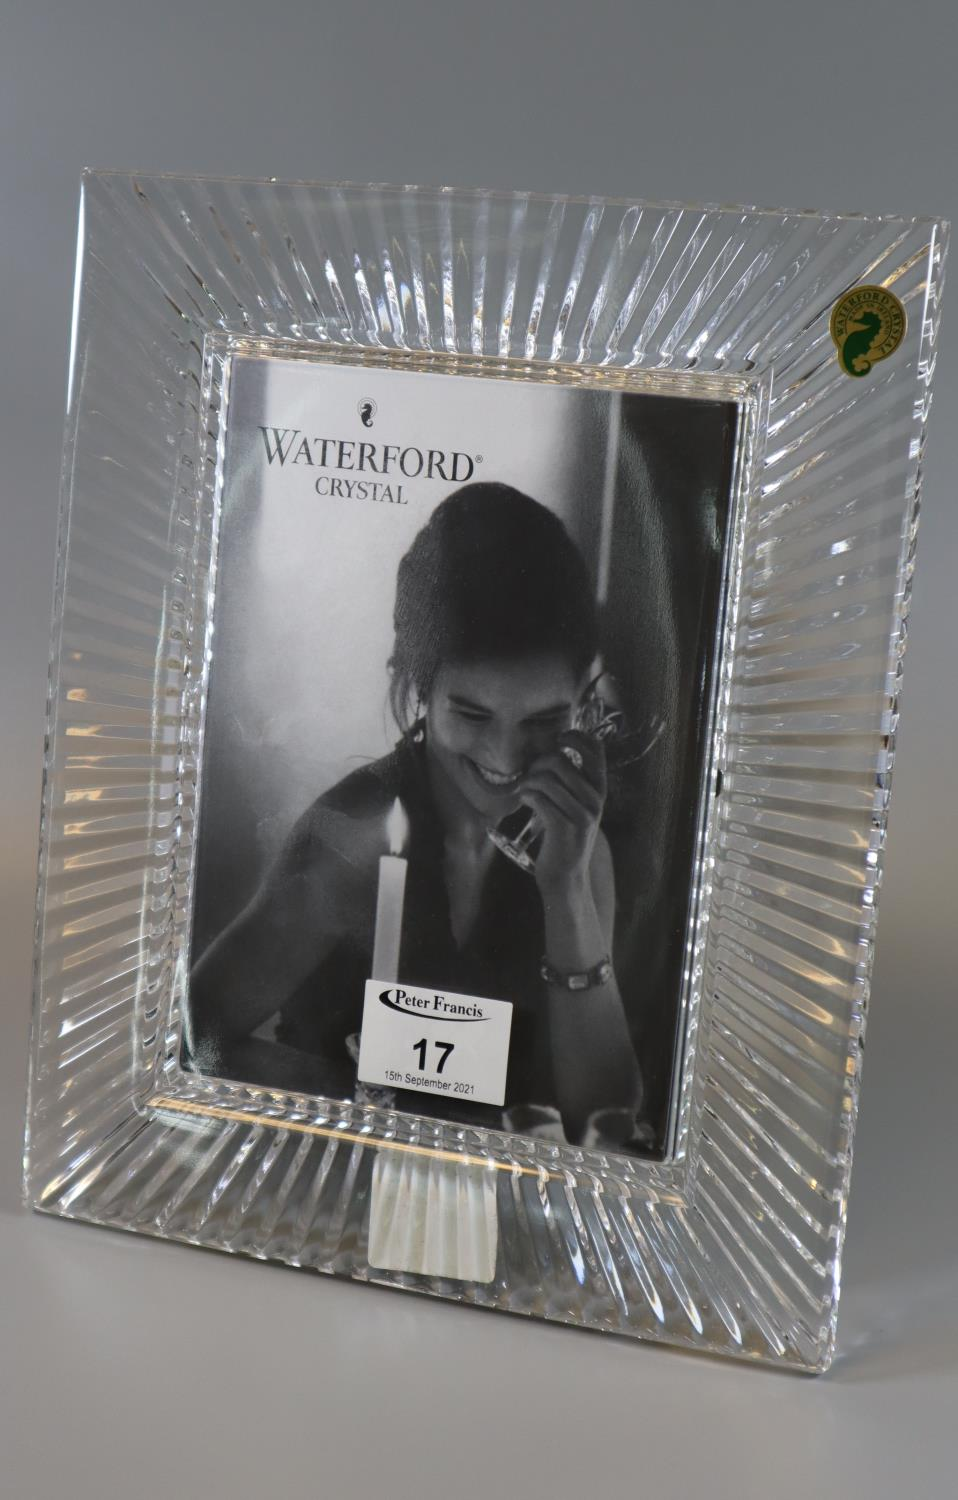 """Waterford crystal 'Somerset' 5"""" x 7"""" easel picture frame in original box. (B.P. 21% + VAT)"""